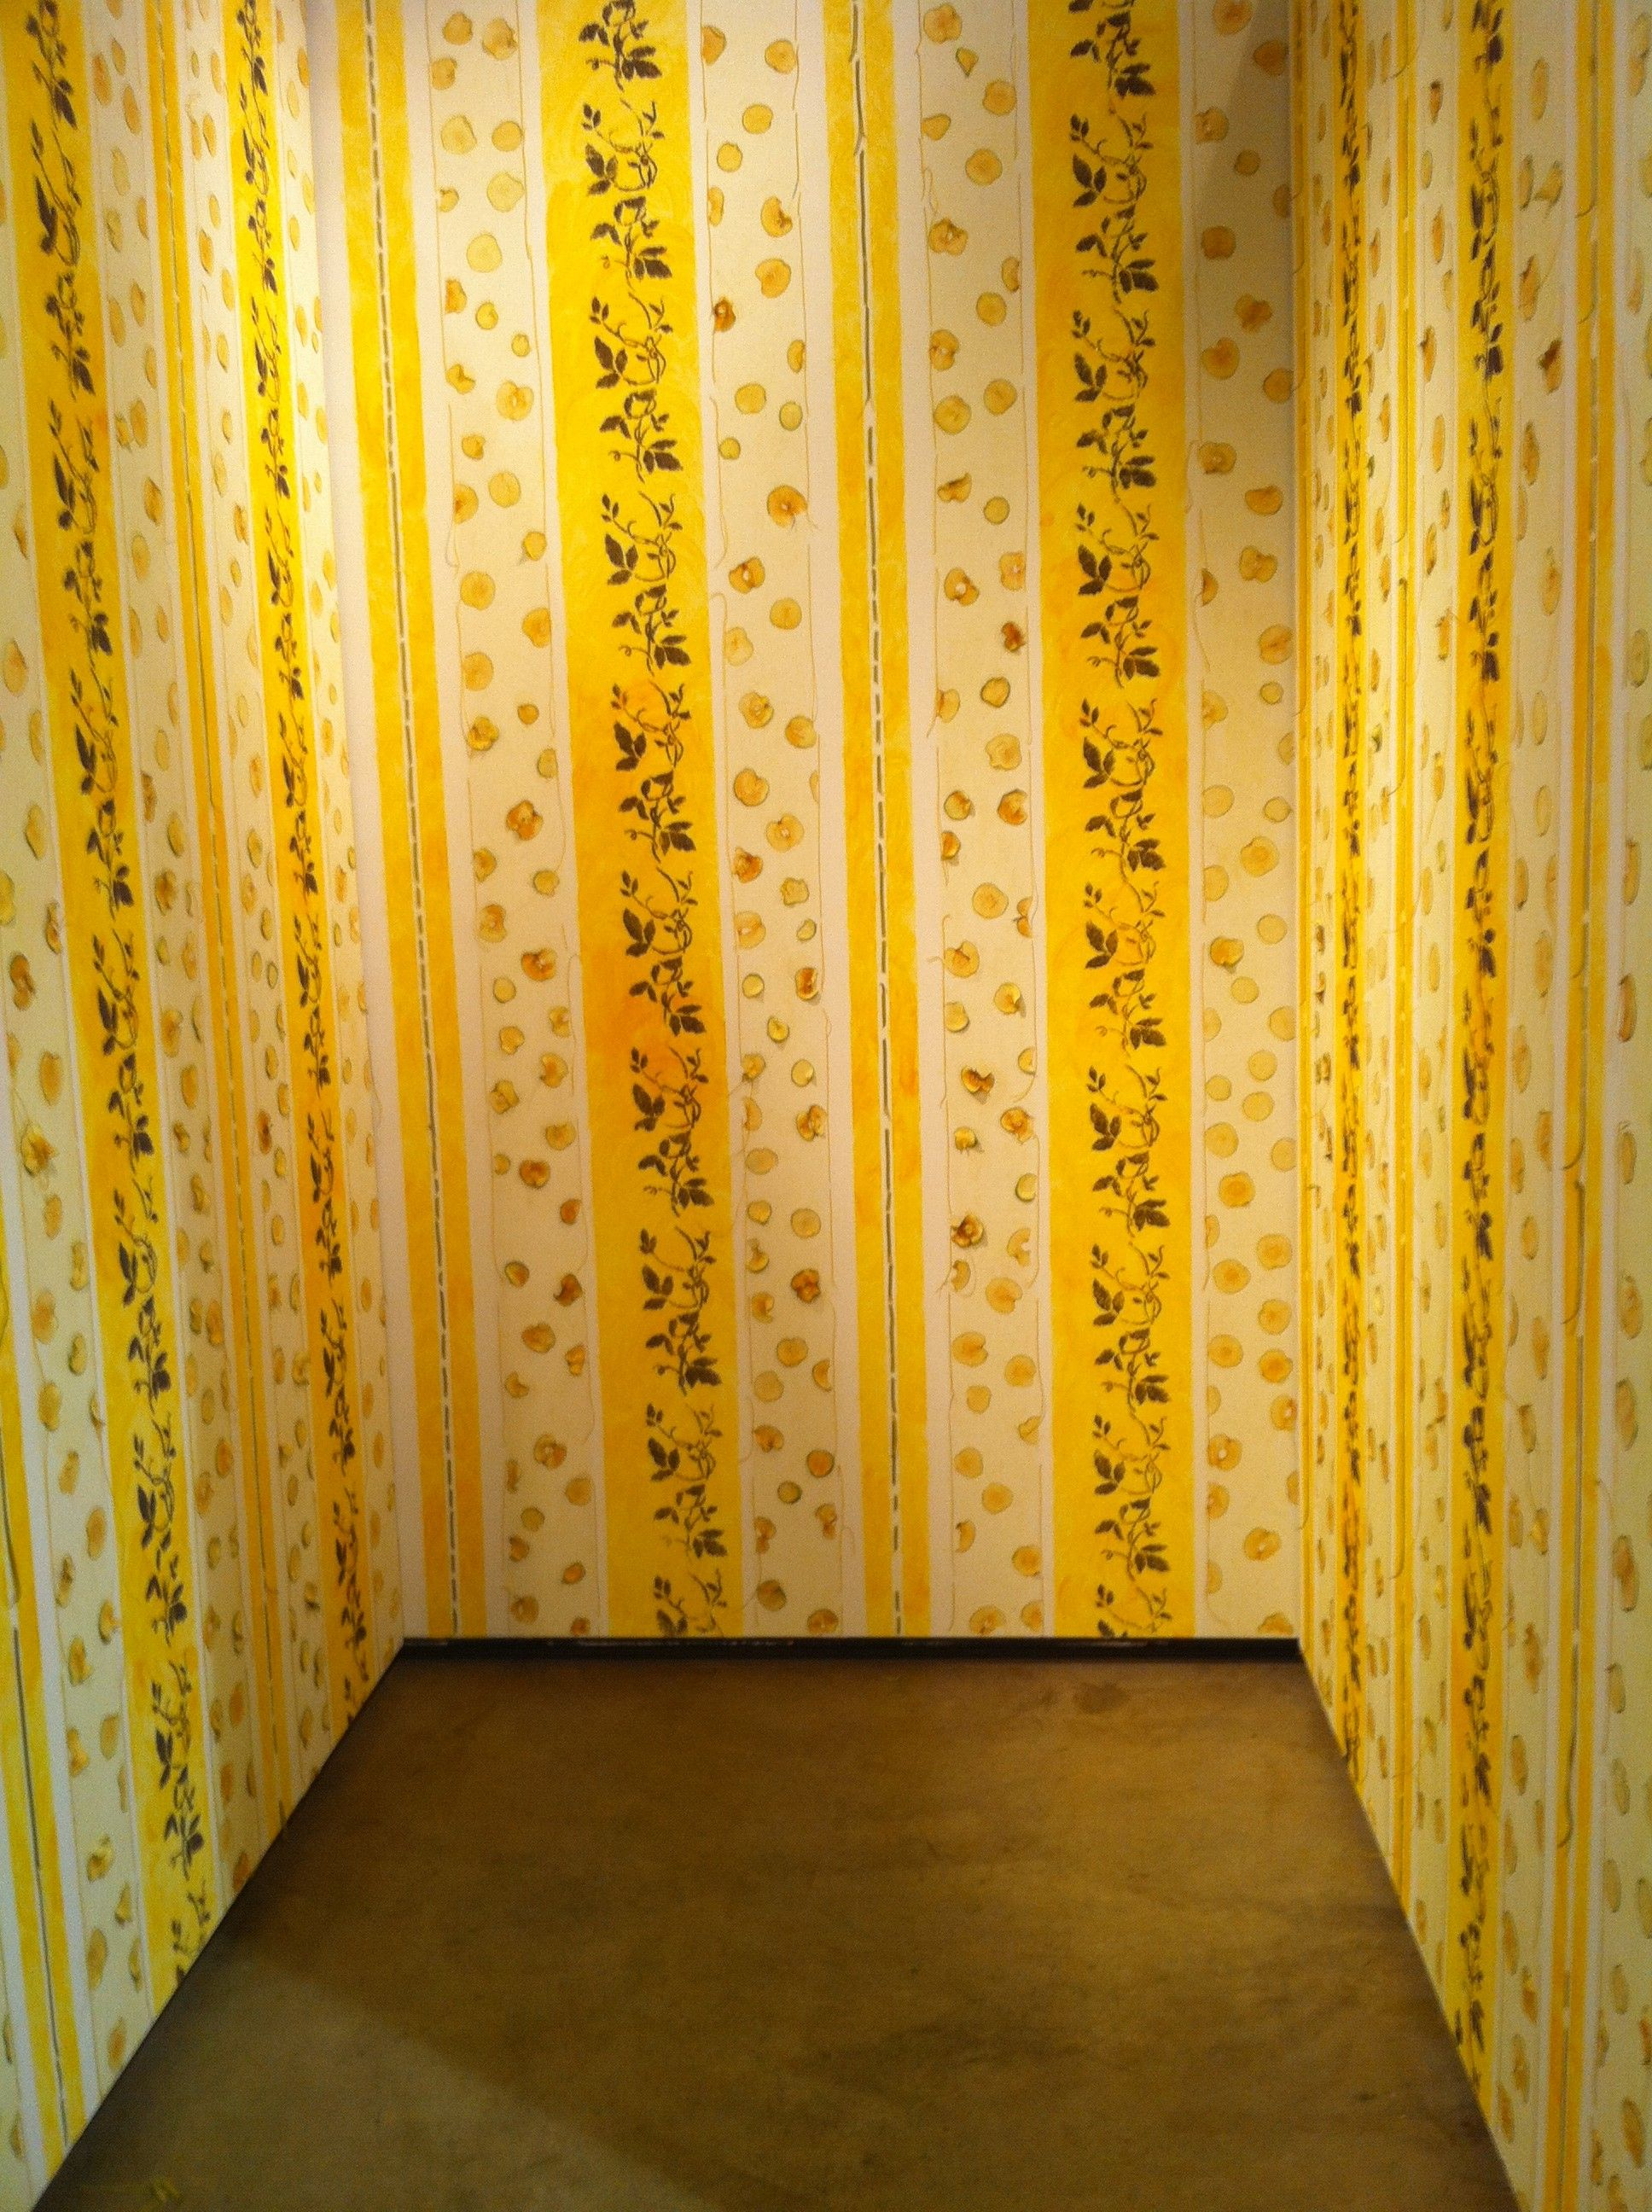 best images about the yellow 17 best images about the yellow creative mental illness and stella tennant